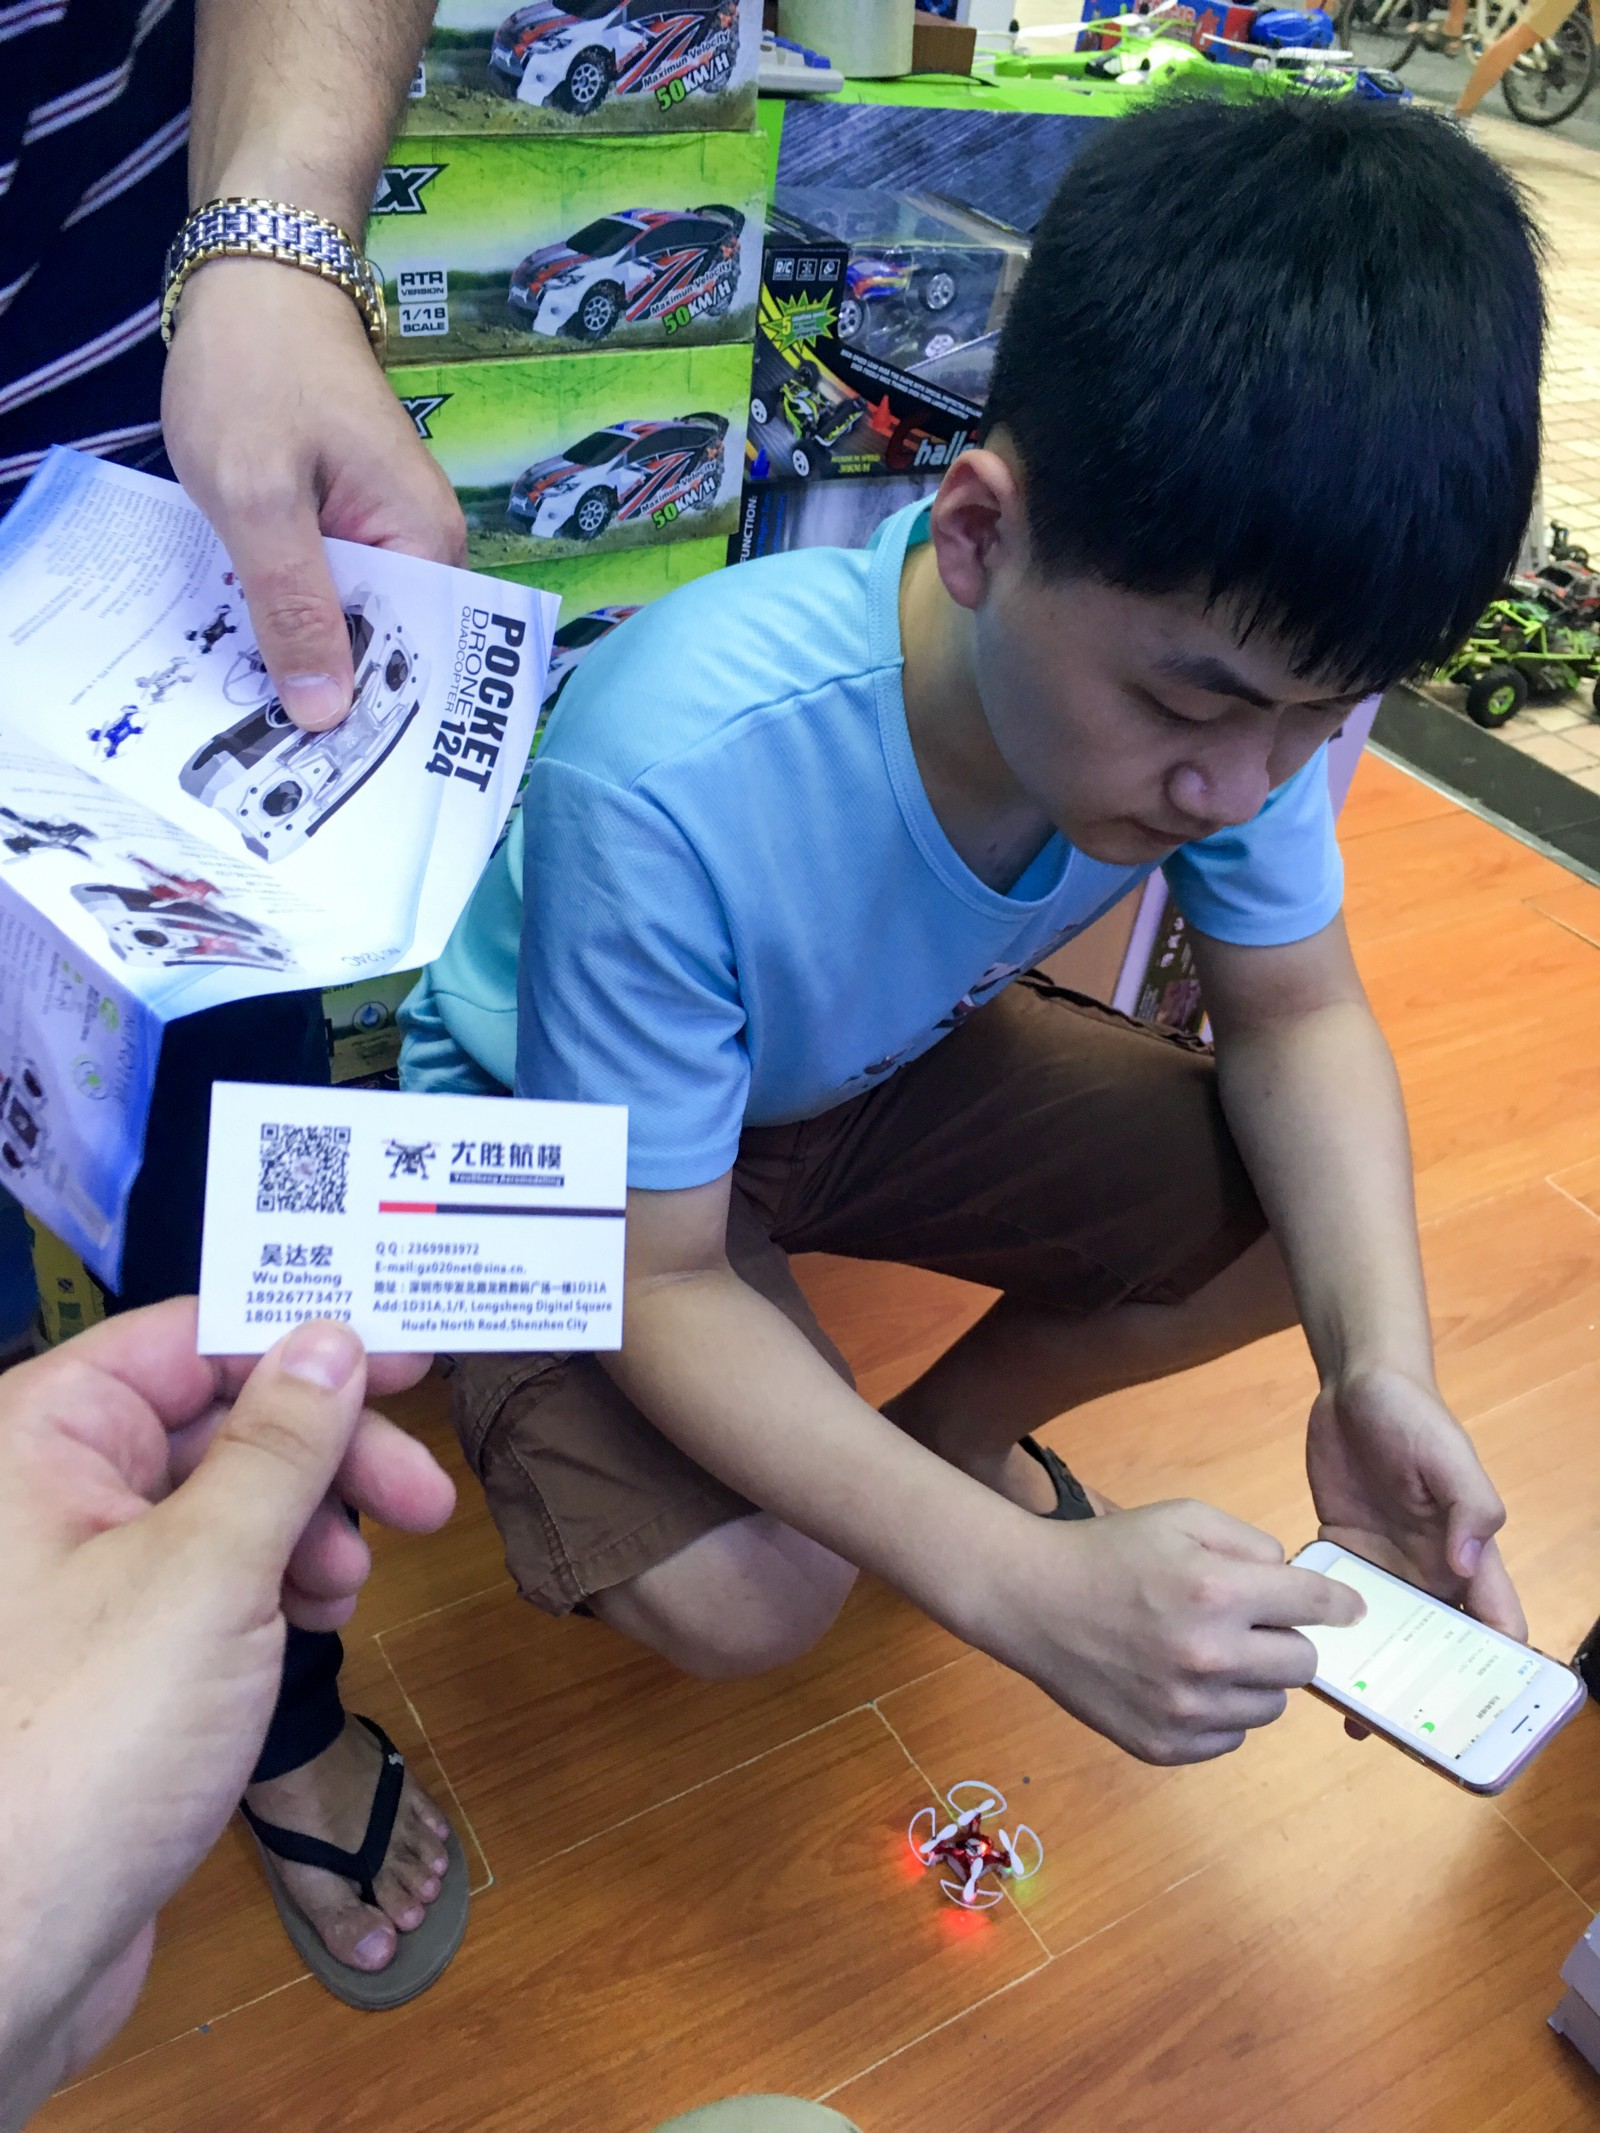 What $50 Buys You at Huaqiangbei, the World's Most Fascinating Electronic Market.